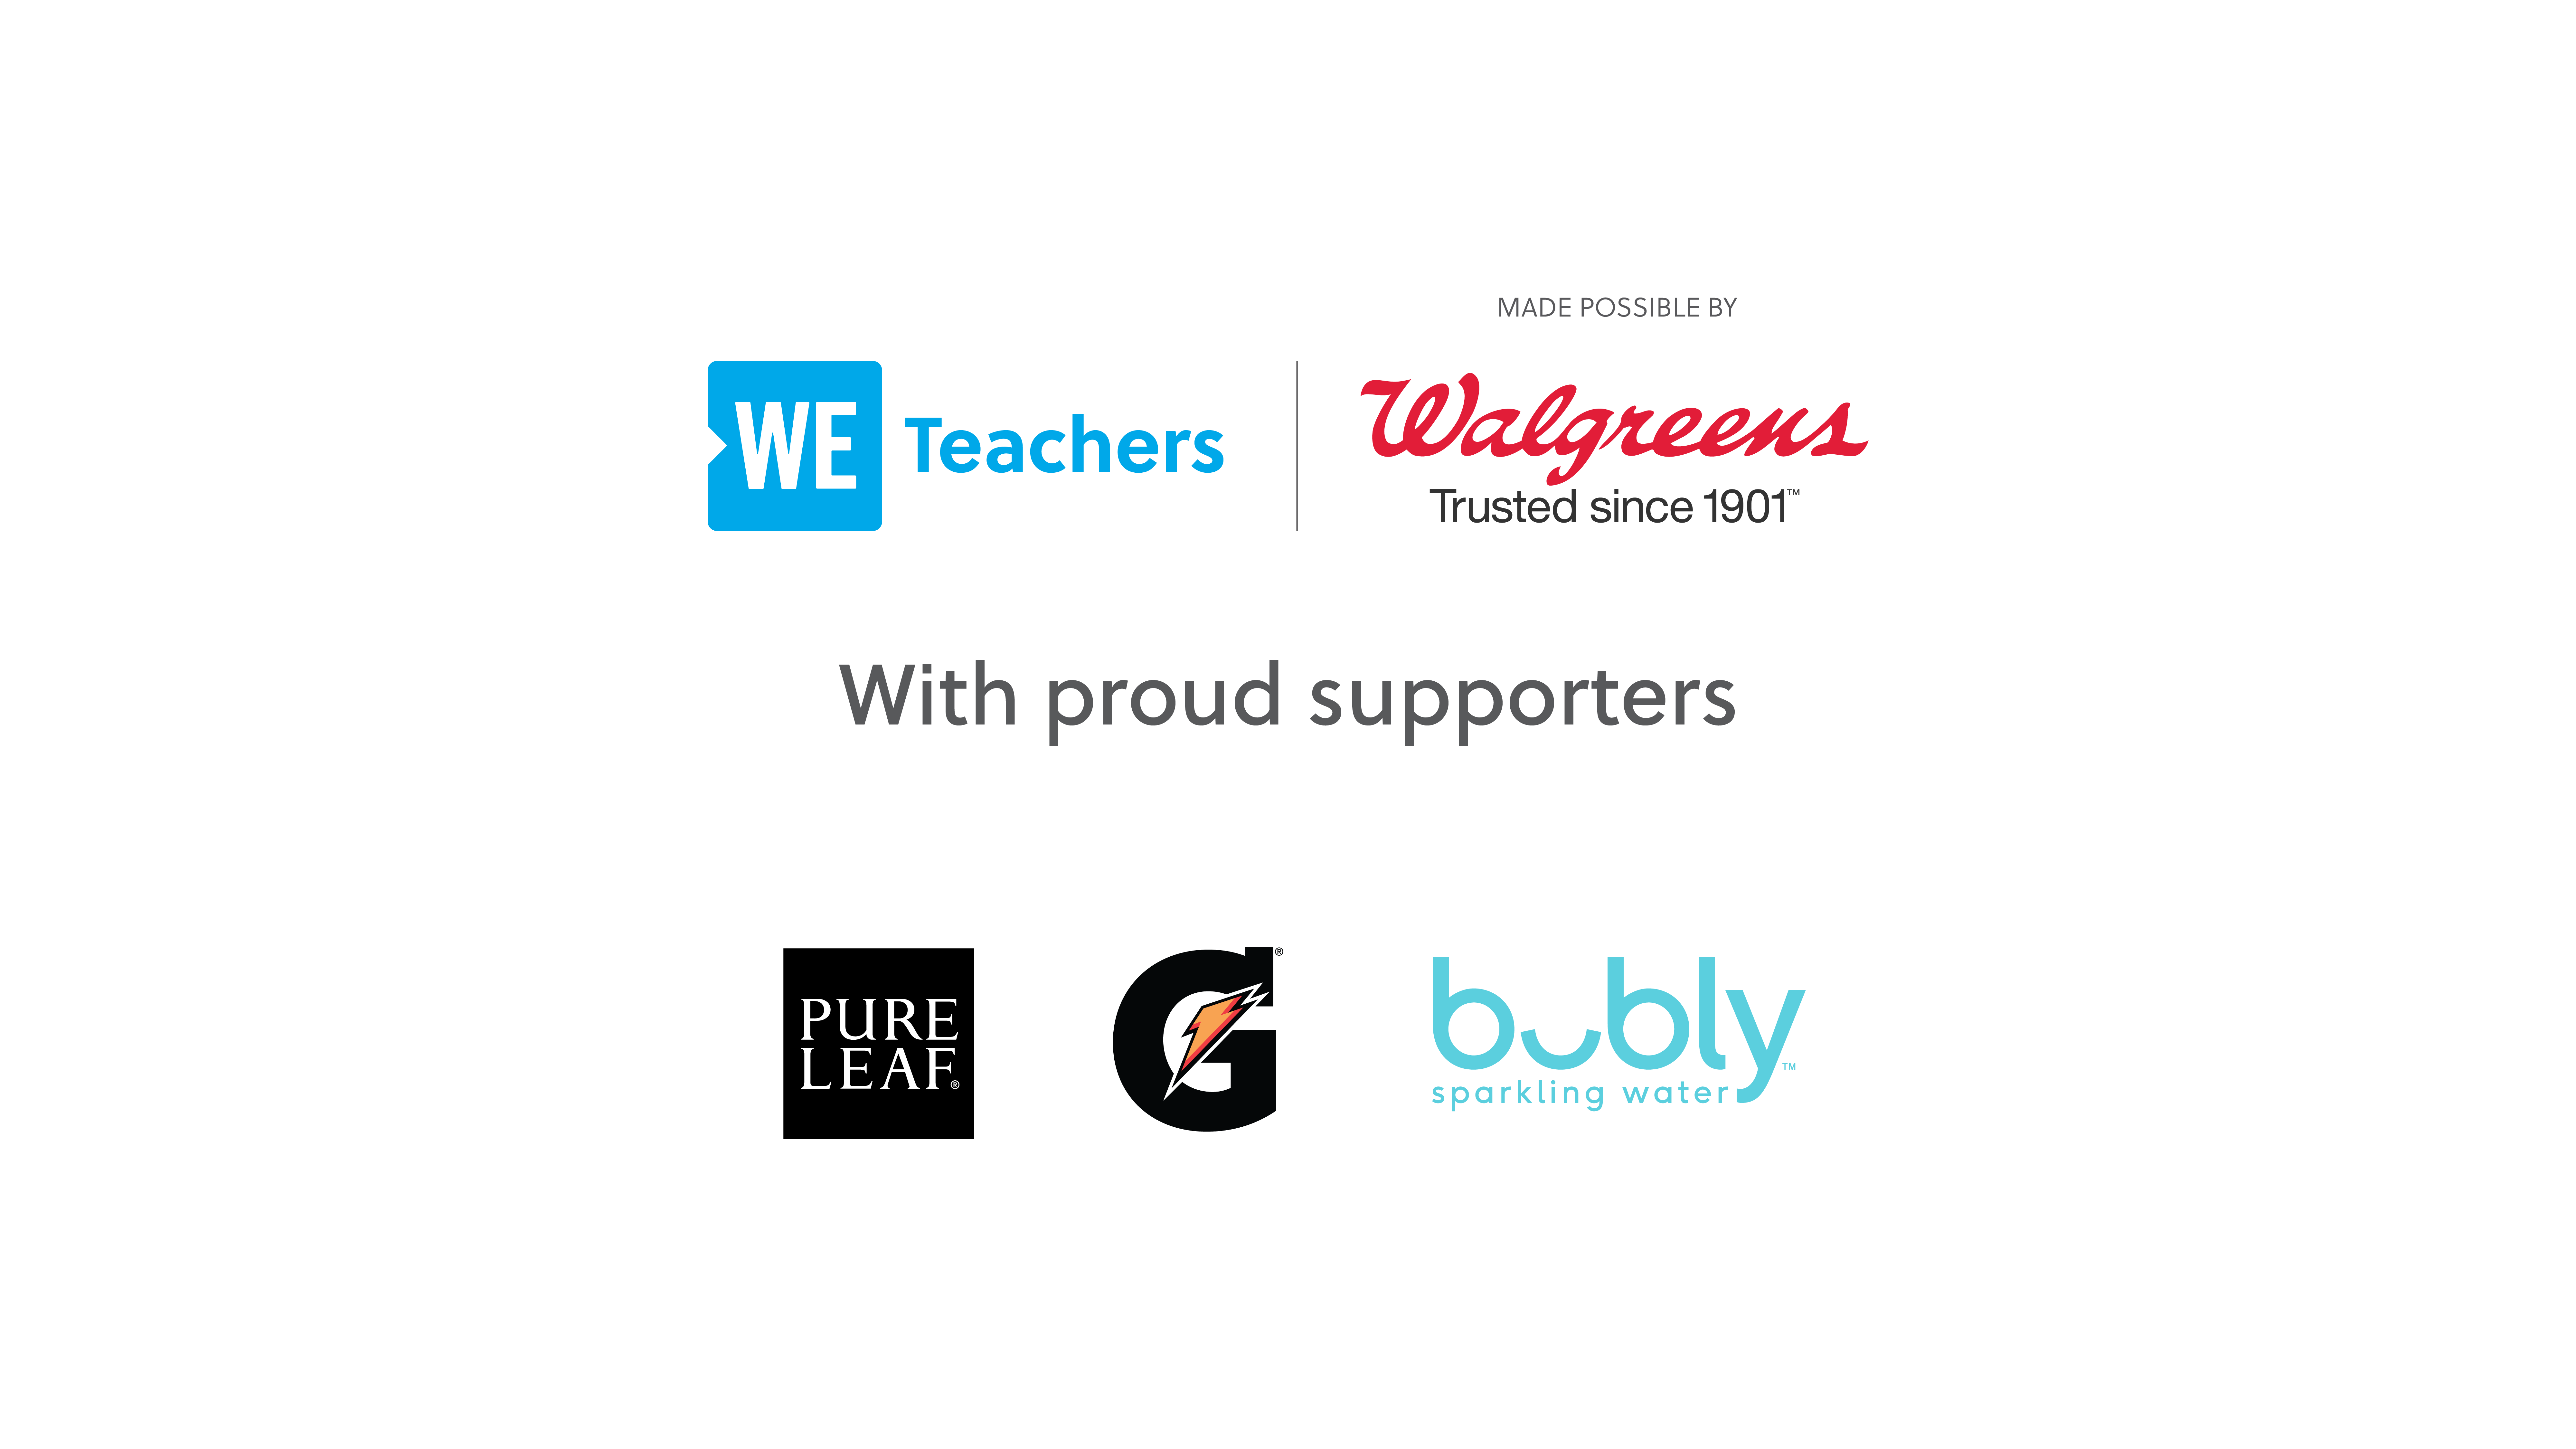 WE Teachers Made Possible by Walgreens and Proudly Supported by Lipton Pure Leaf, Gatorade, and Bubly